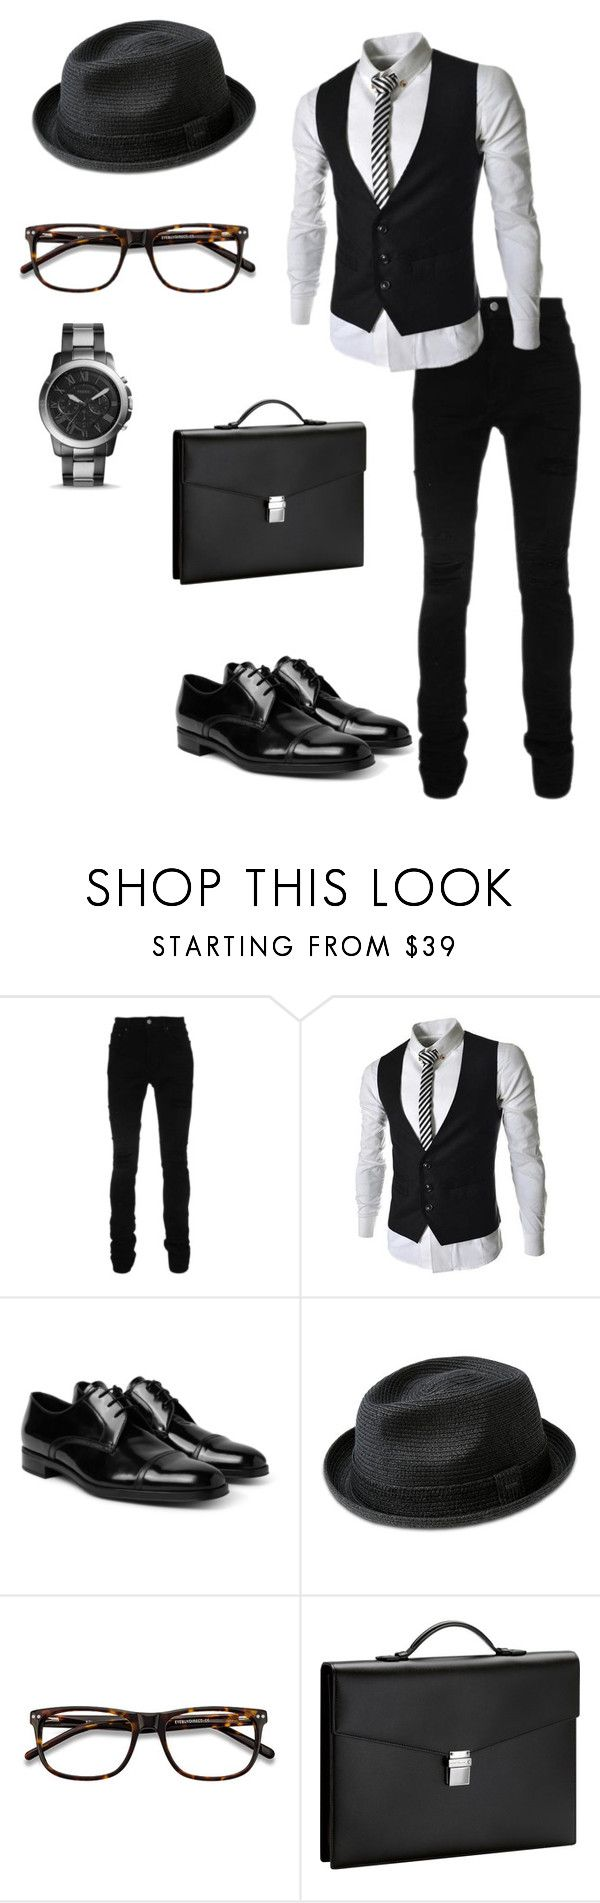 """Untitled #970"" by crystalrose-014 ❤ liked on Polyvore featuring AMIRI, Prada, Bailey of Hollywood, Ace, Montblanc, FOSSIL, men's fashion and menswear"